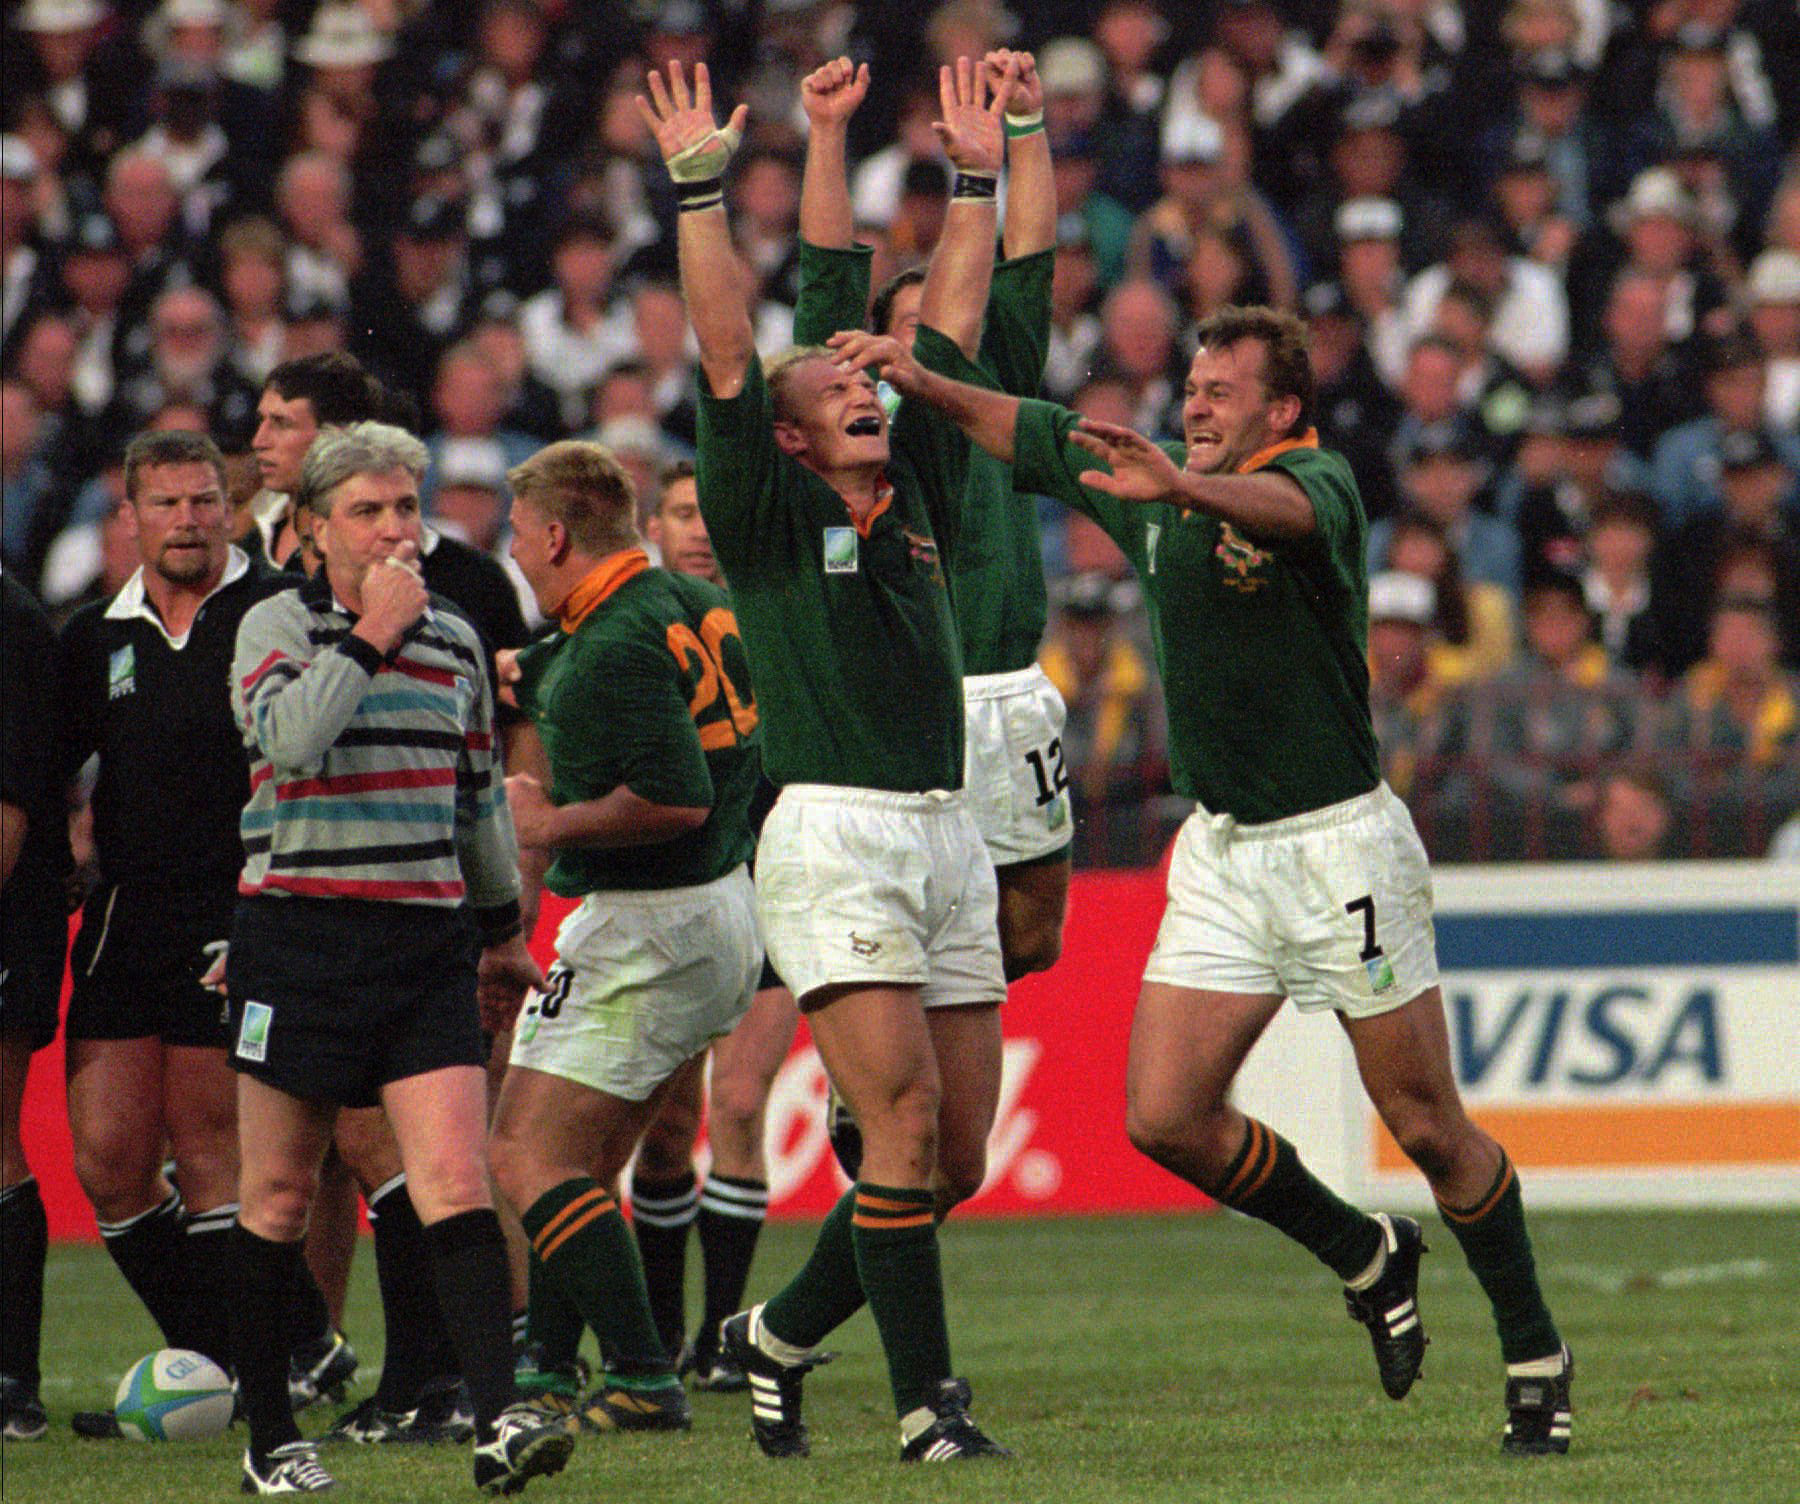 South African captain Francois Pienaar throws his arms in the air as referee Ed Morrison blows the final whistle as his team won the Rugby World Cup over New Zealand in the final 15-12 at Ellis Park, Johannesberg, June 24, 1995.